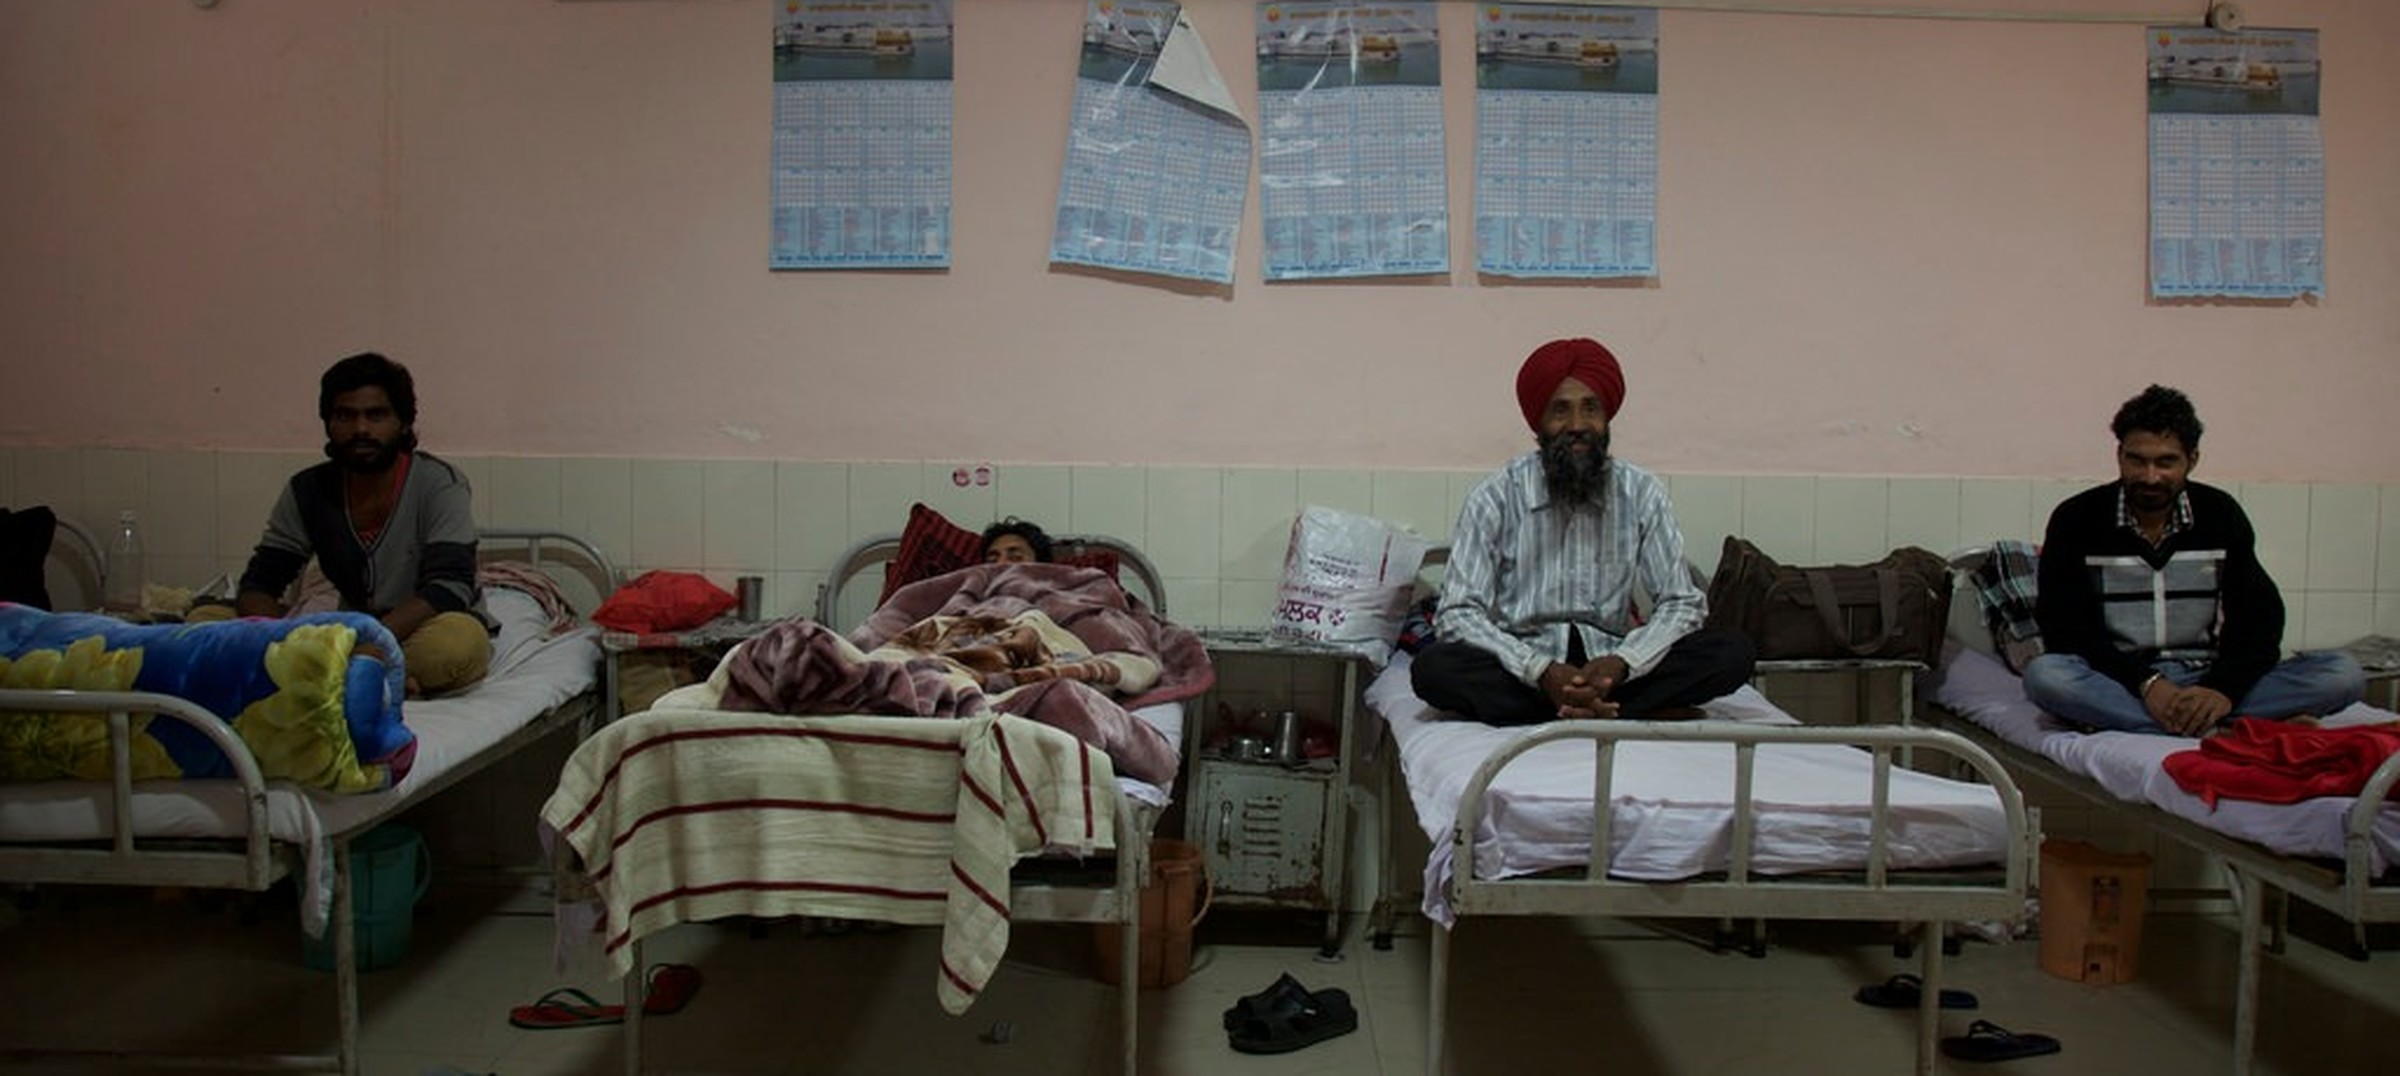 Has Punjab's obsession with cancer robbed its poor of healthcare?